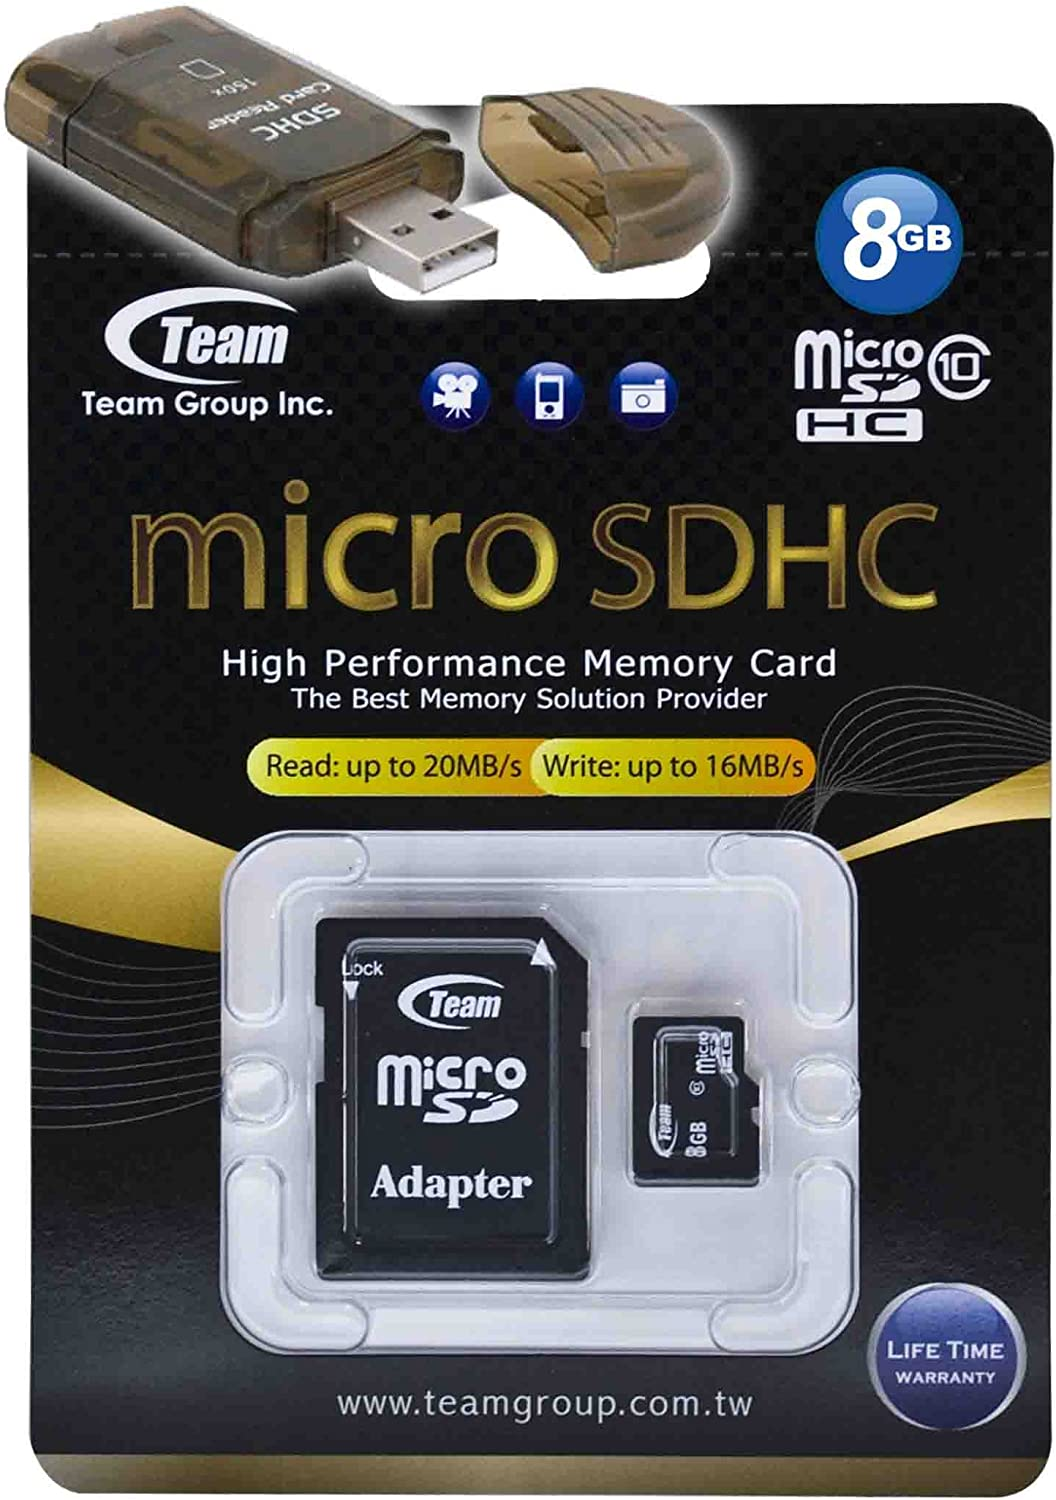 8GB Shipping included Class 10 MicroSDHC Max 70% OFF Team High Bla 20MB Memory Sec Card. Speed